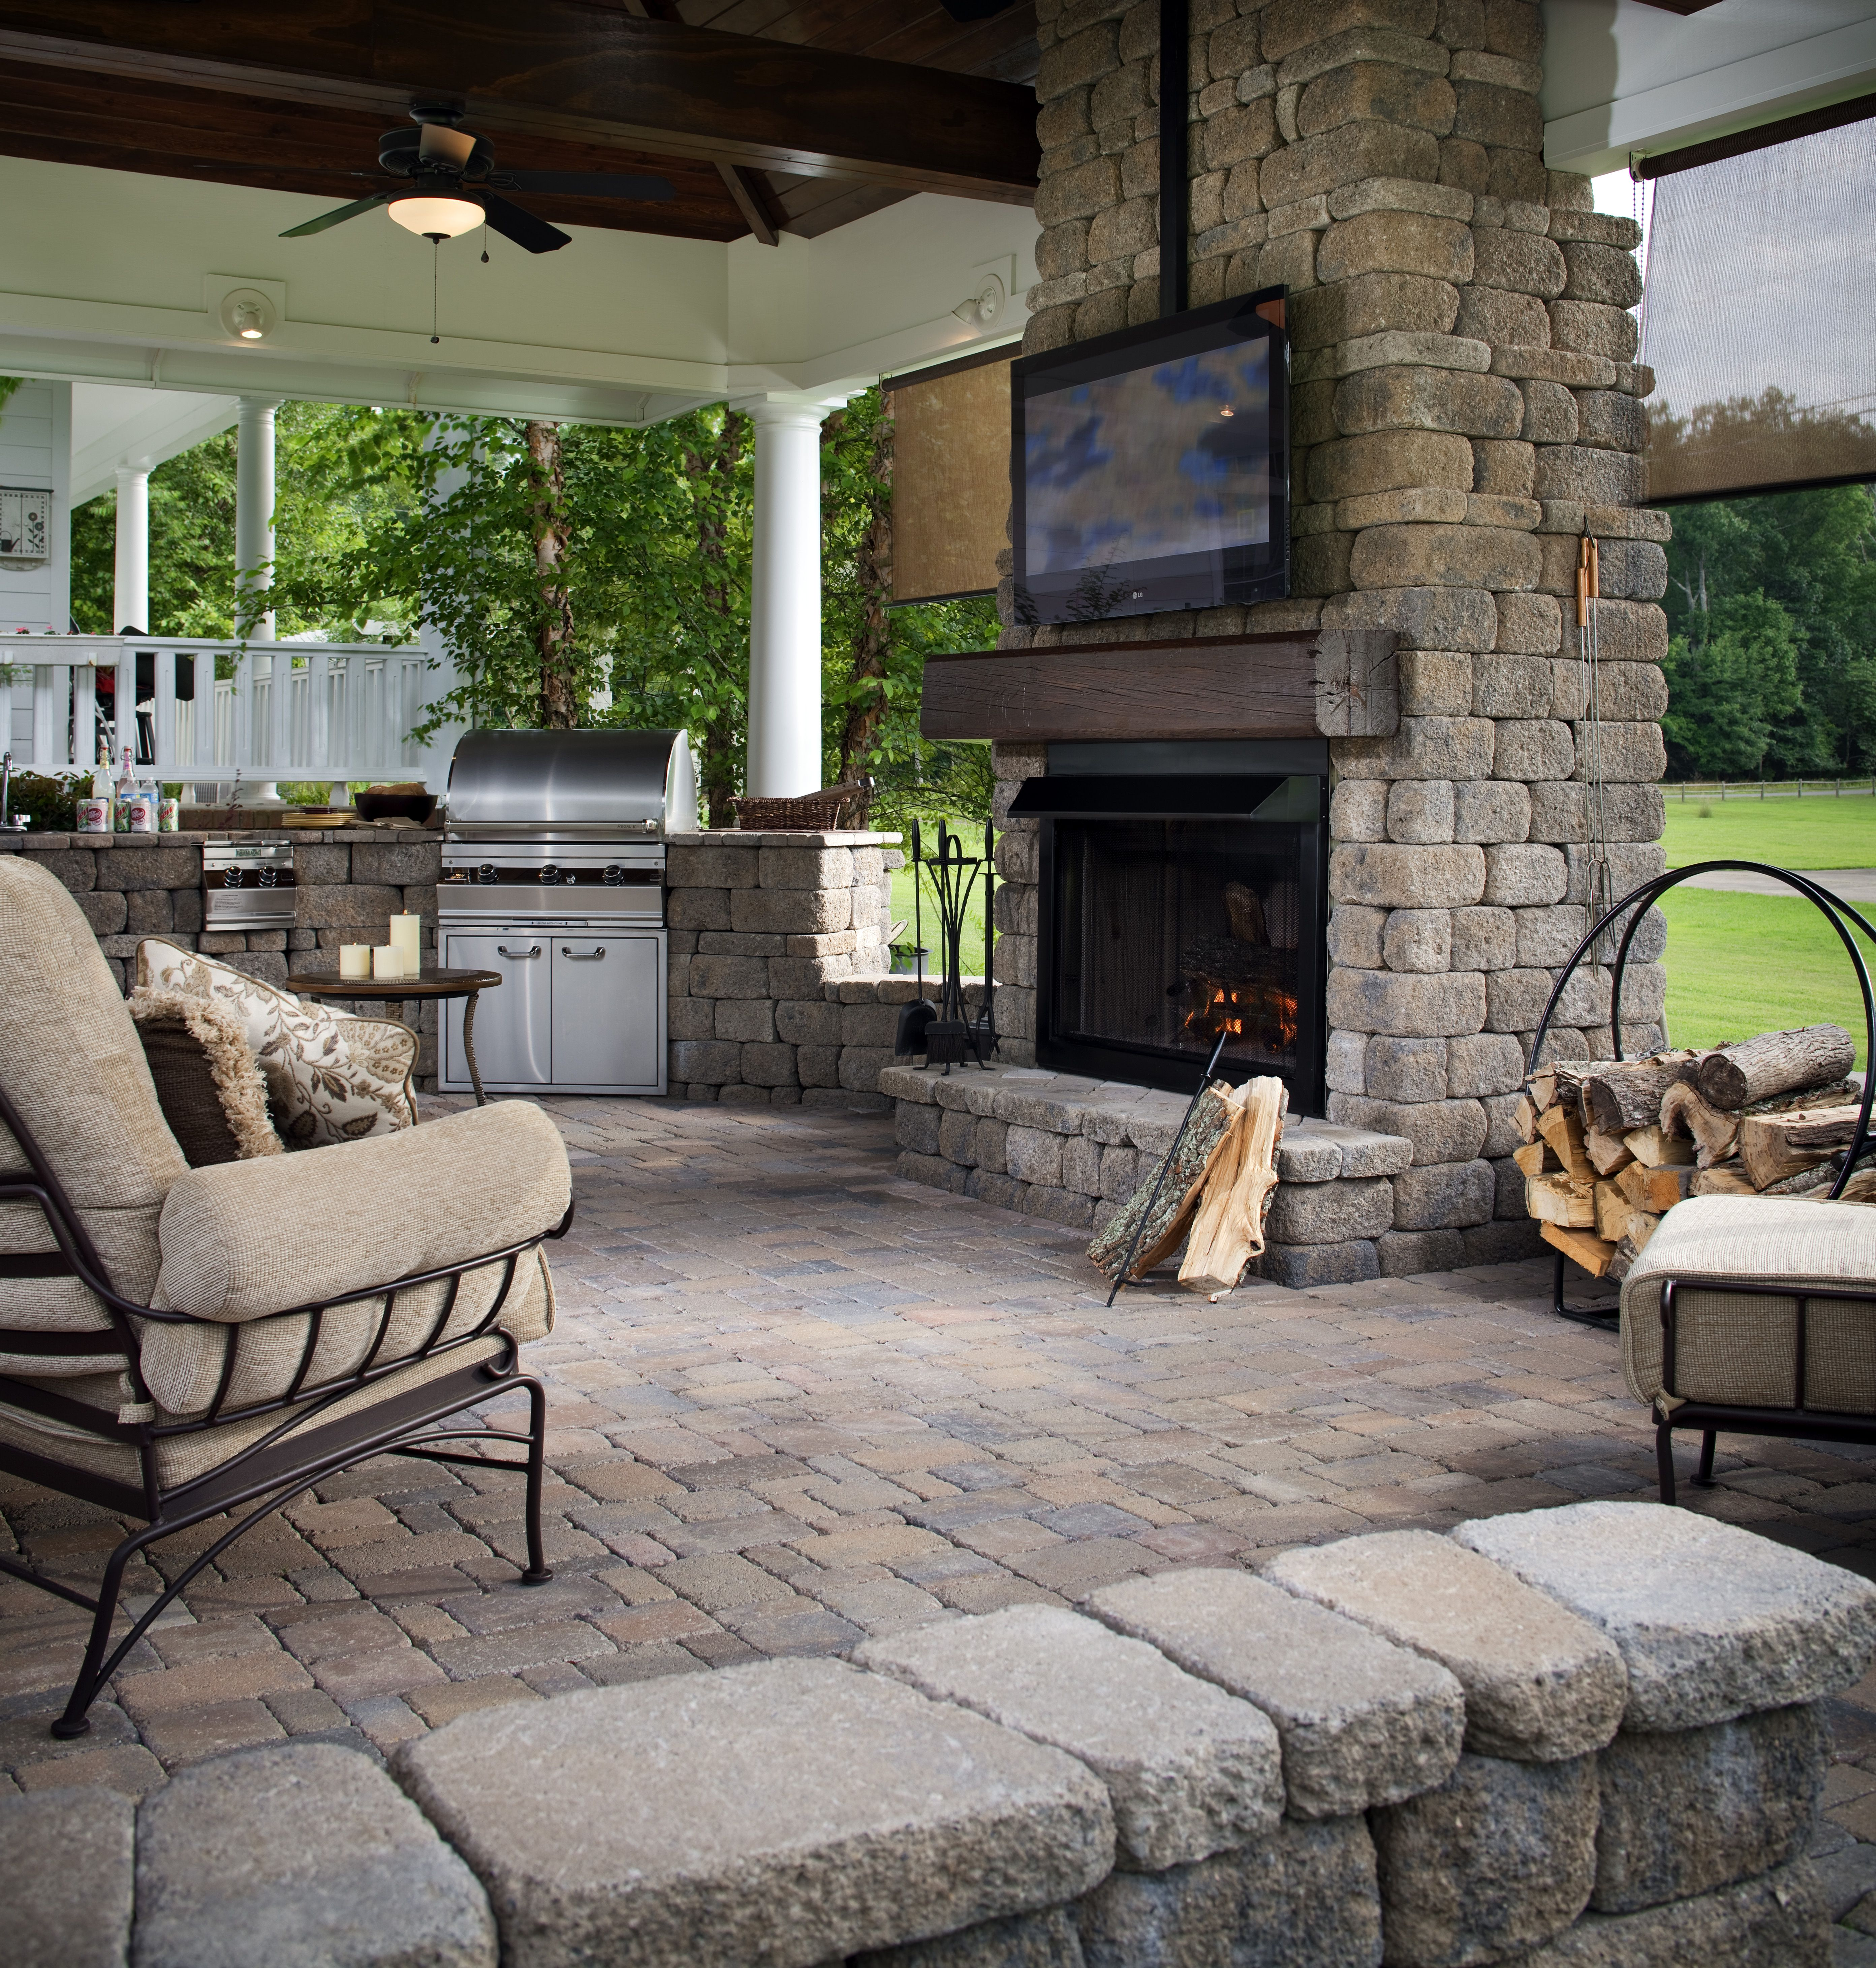 Garden Seating Ideas For Your Outdoor Living Room: Beautiful Keystone Country Manor Outdoor Fireplace